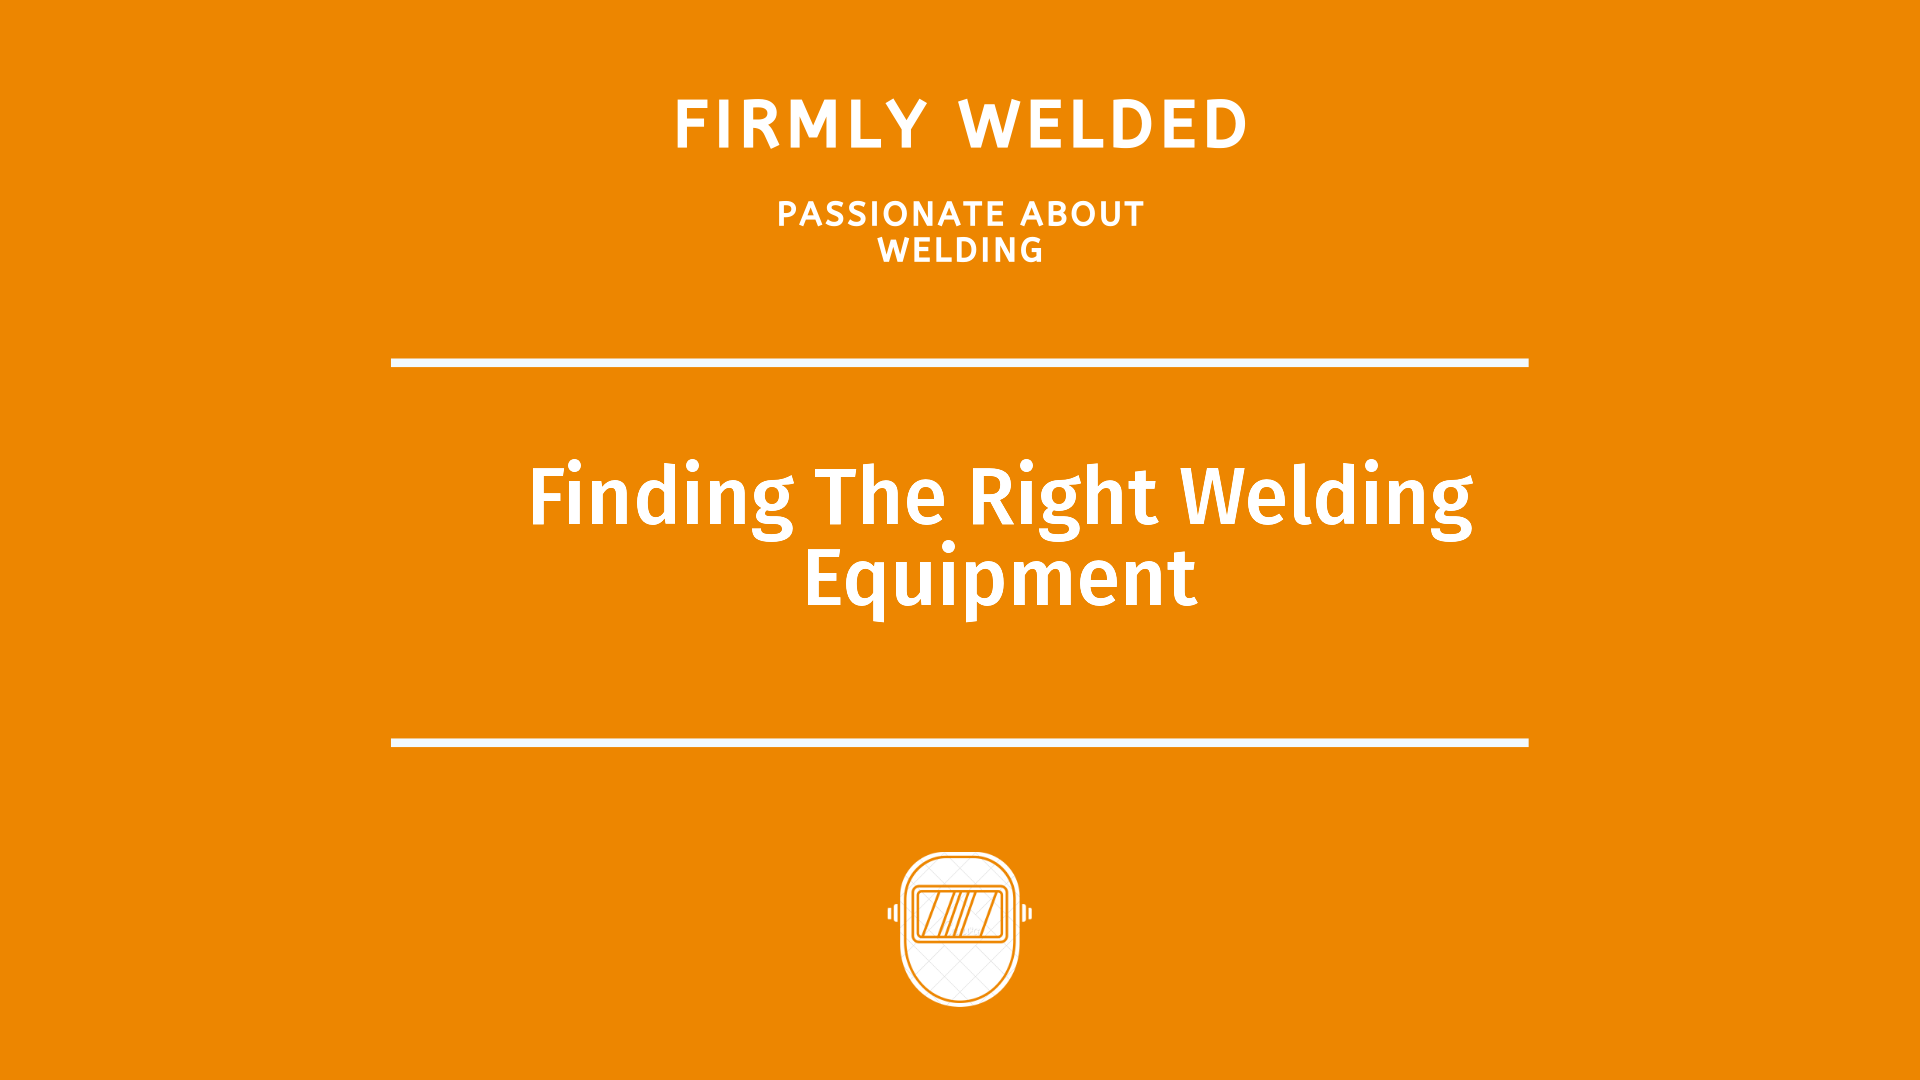 Finding The Right Welding Equipment